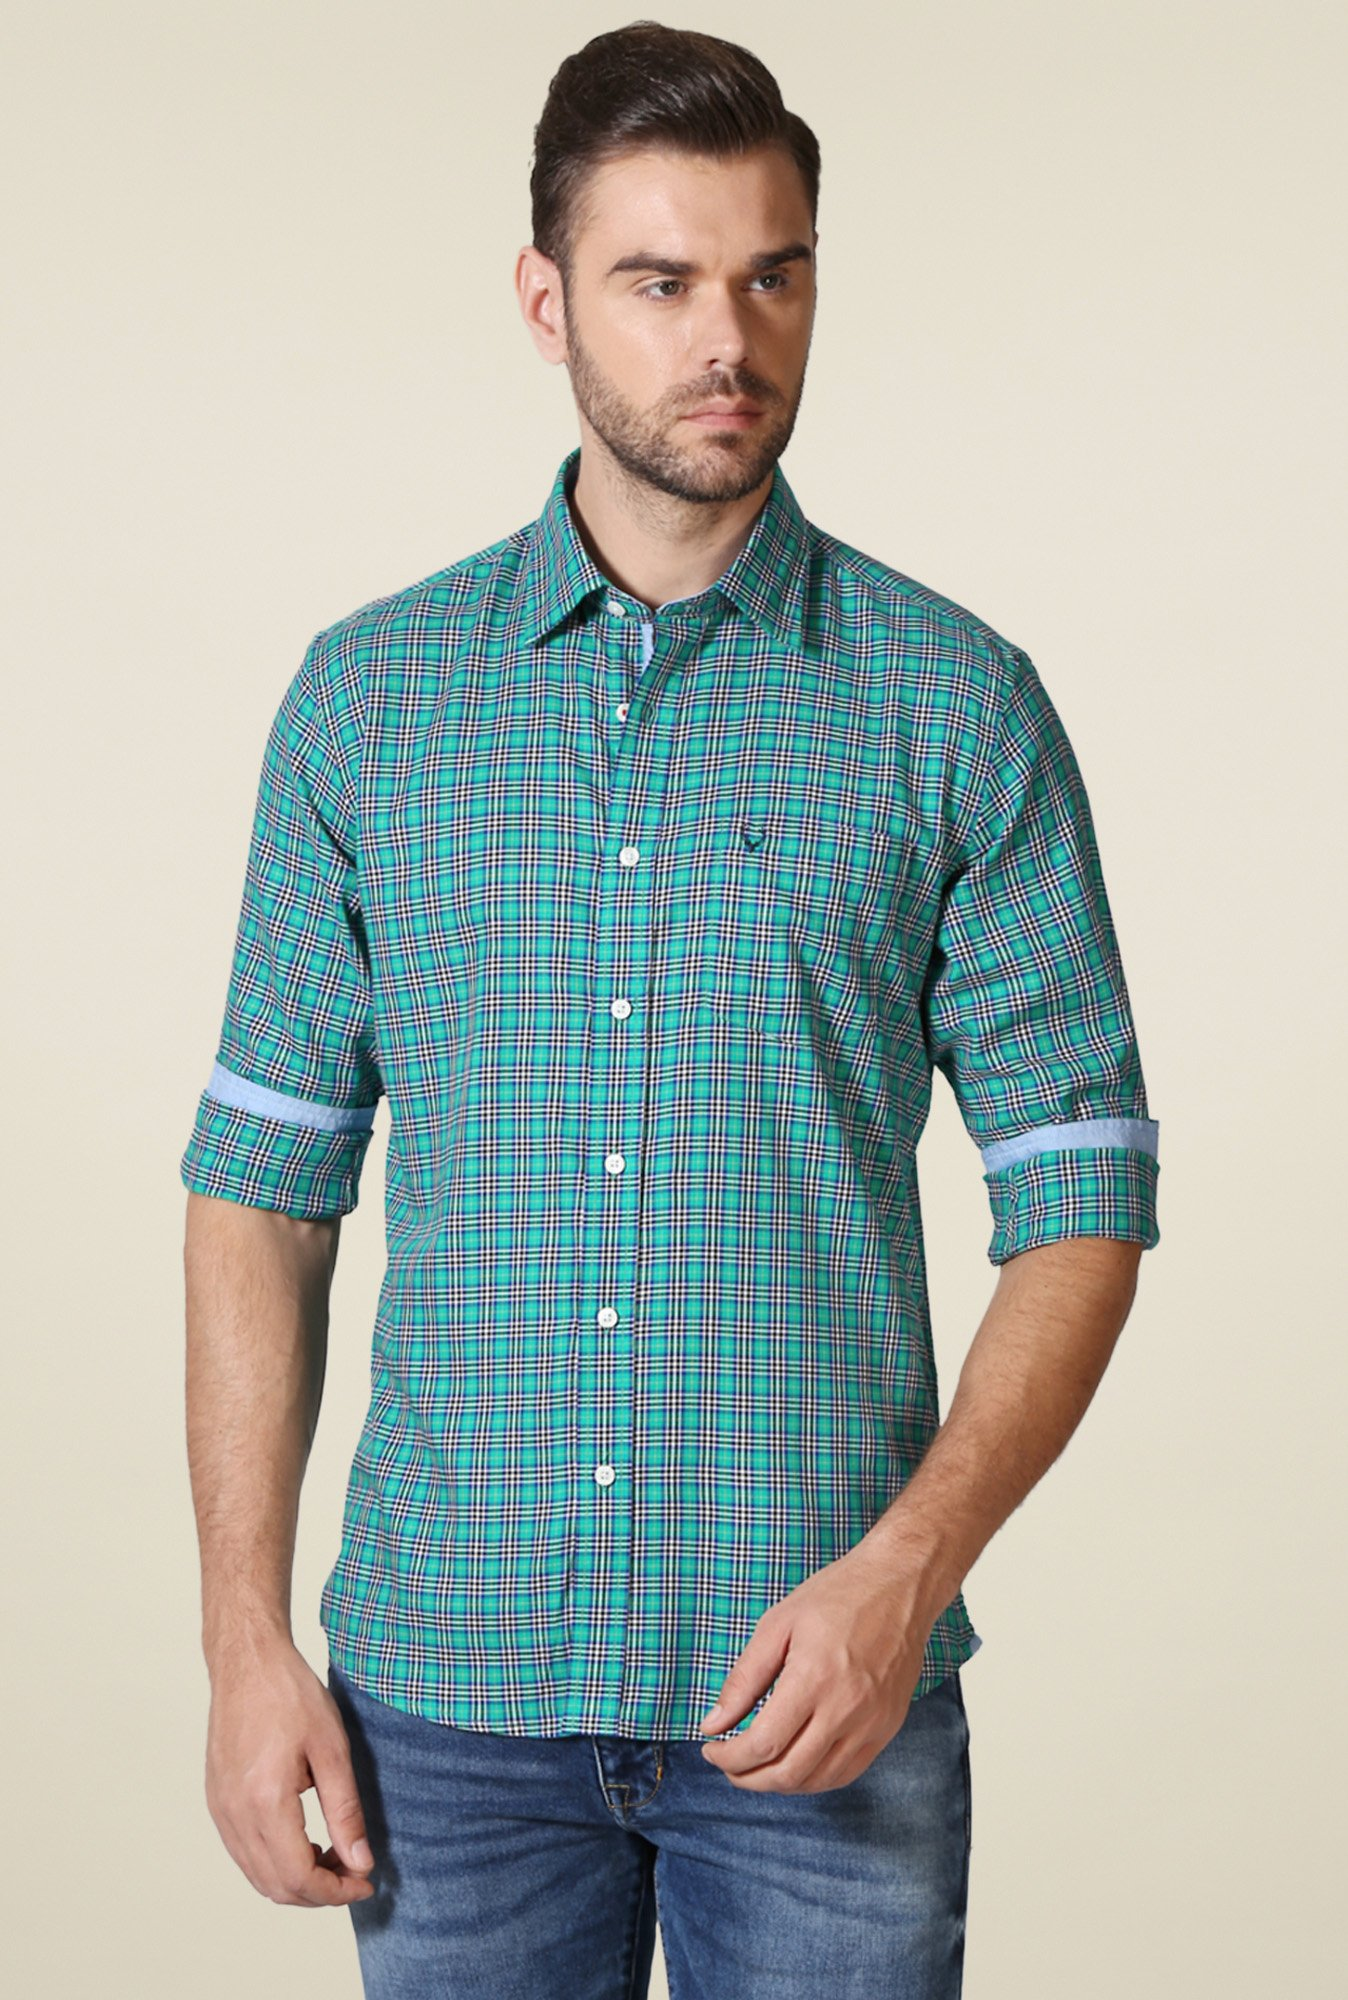 Allen Solly Turquoise Checks Shirt